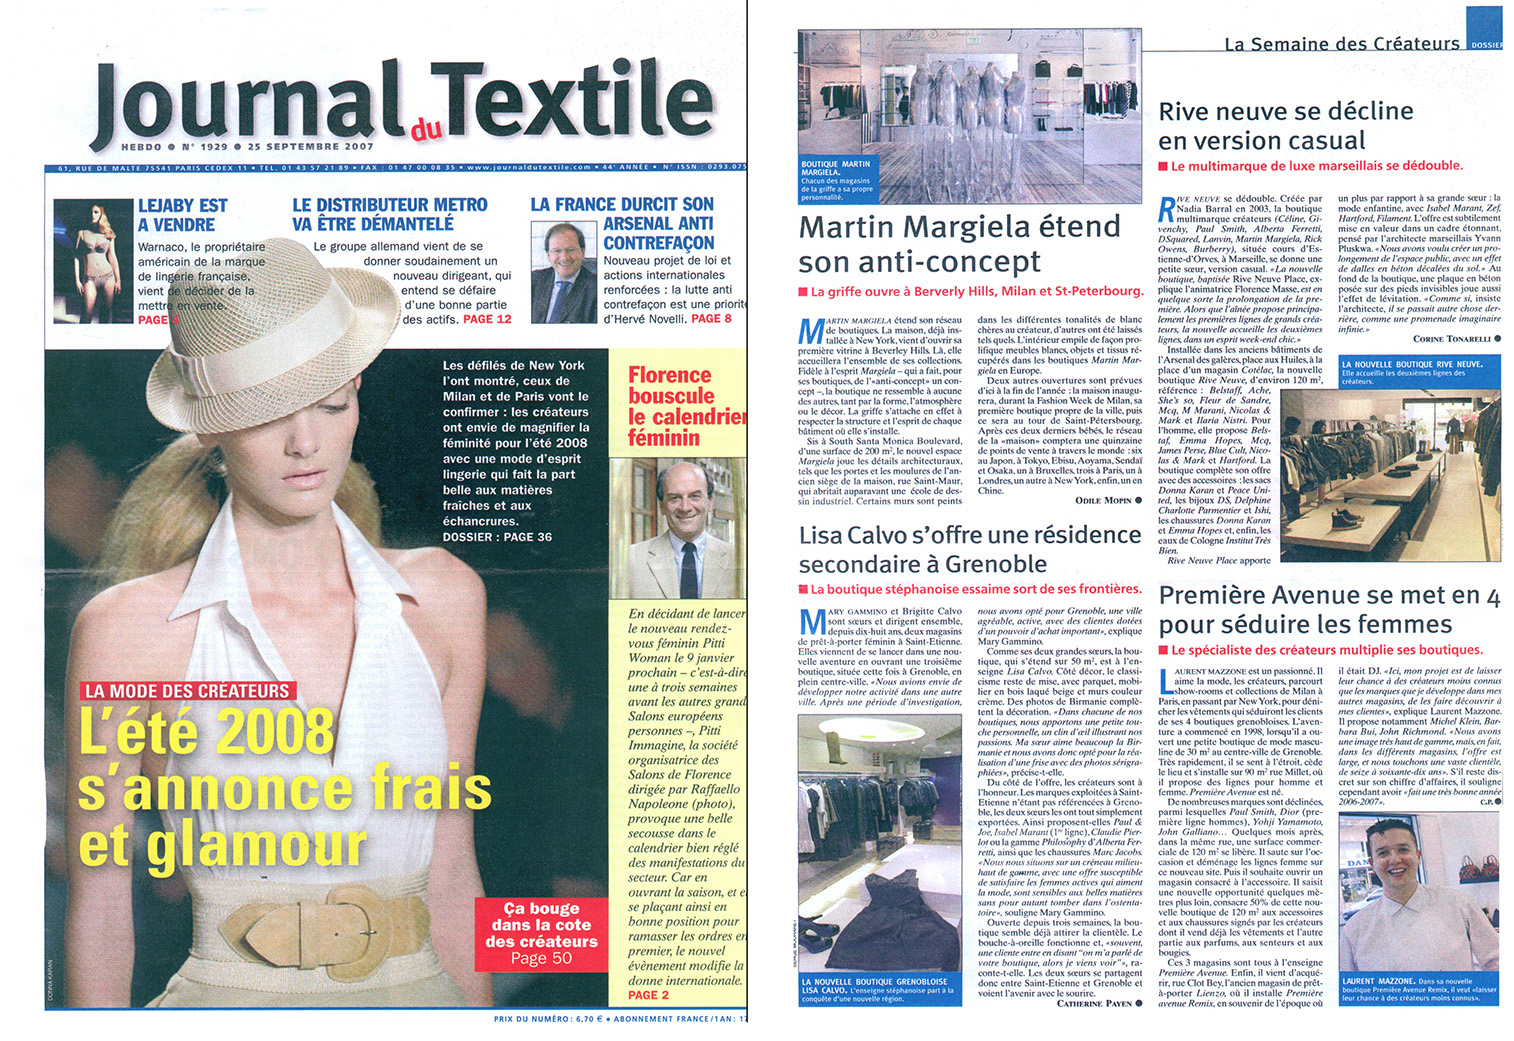 Journal du textile - Septembre 2007